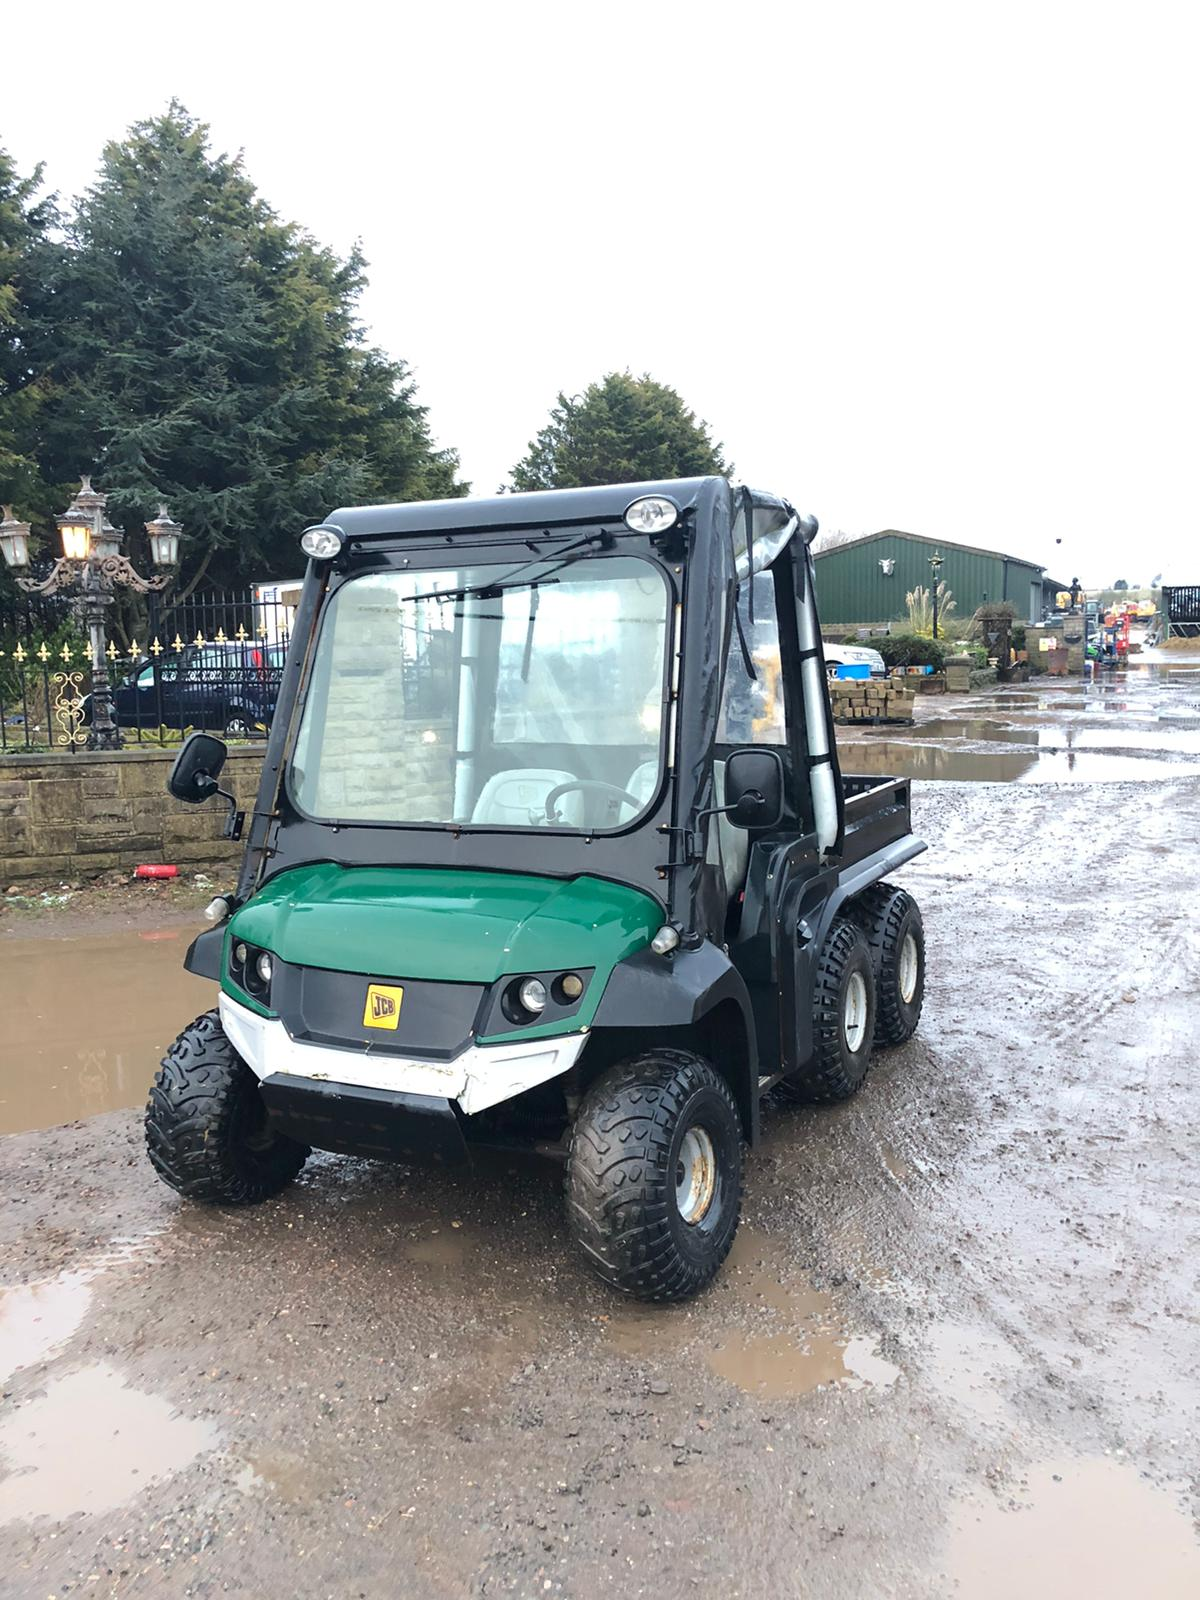 JCB 6X4 GROUNDHOG, YEAR 2008, RUNS, WORKS, TIPS, HYDRAULIC TIPPING BACK, DIFF LOCK, TOW BAR *NO VAT* - Image 2 of 6